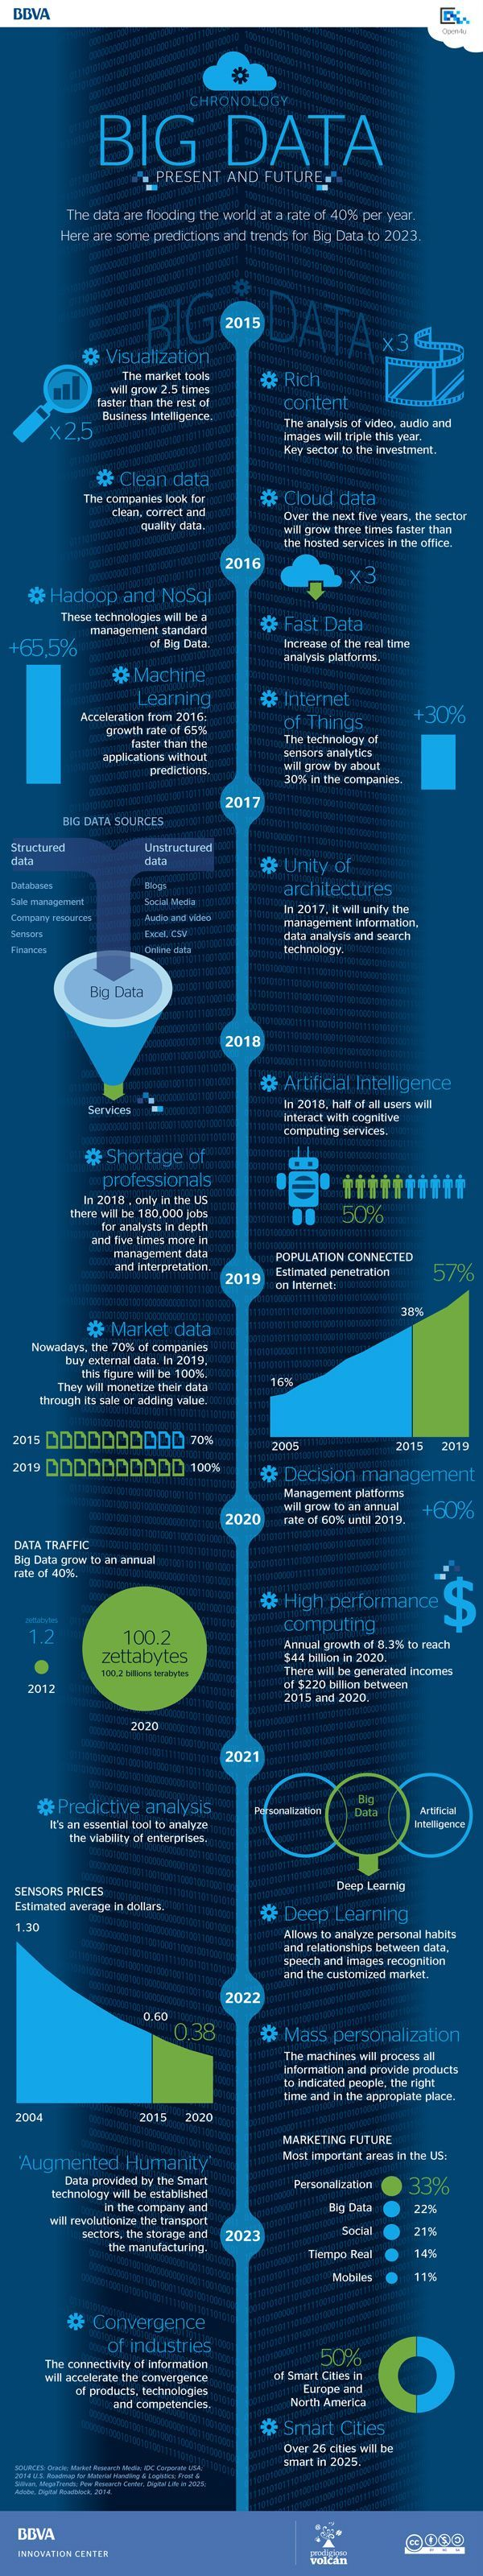 Big Data, Present, and Future. Predictions and trends for big data to 2023.  #nissolution #telcos #bigdata